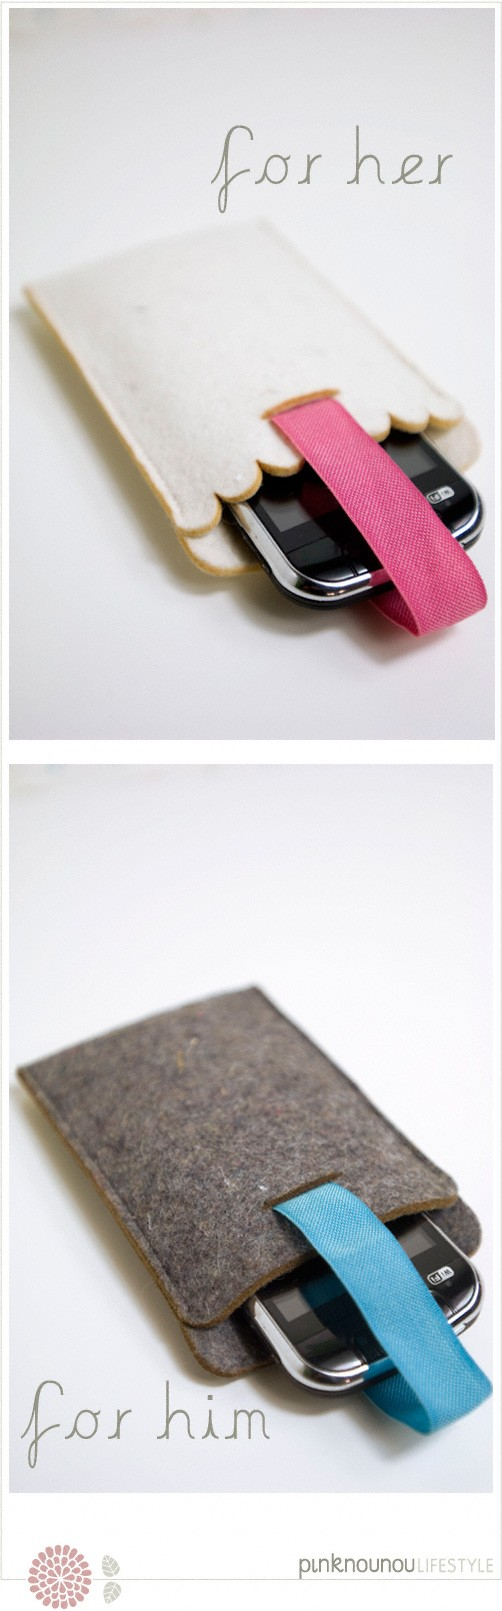 mobile phone sleeves by PinkNounou Lifestyle